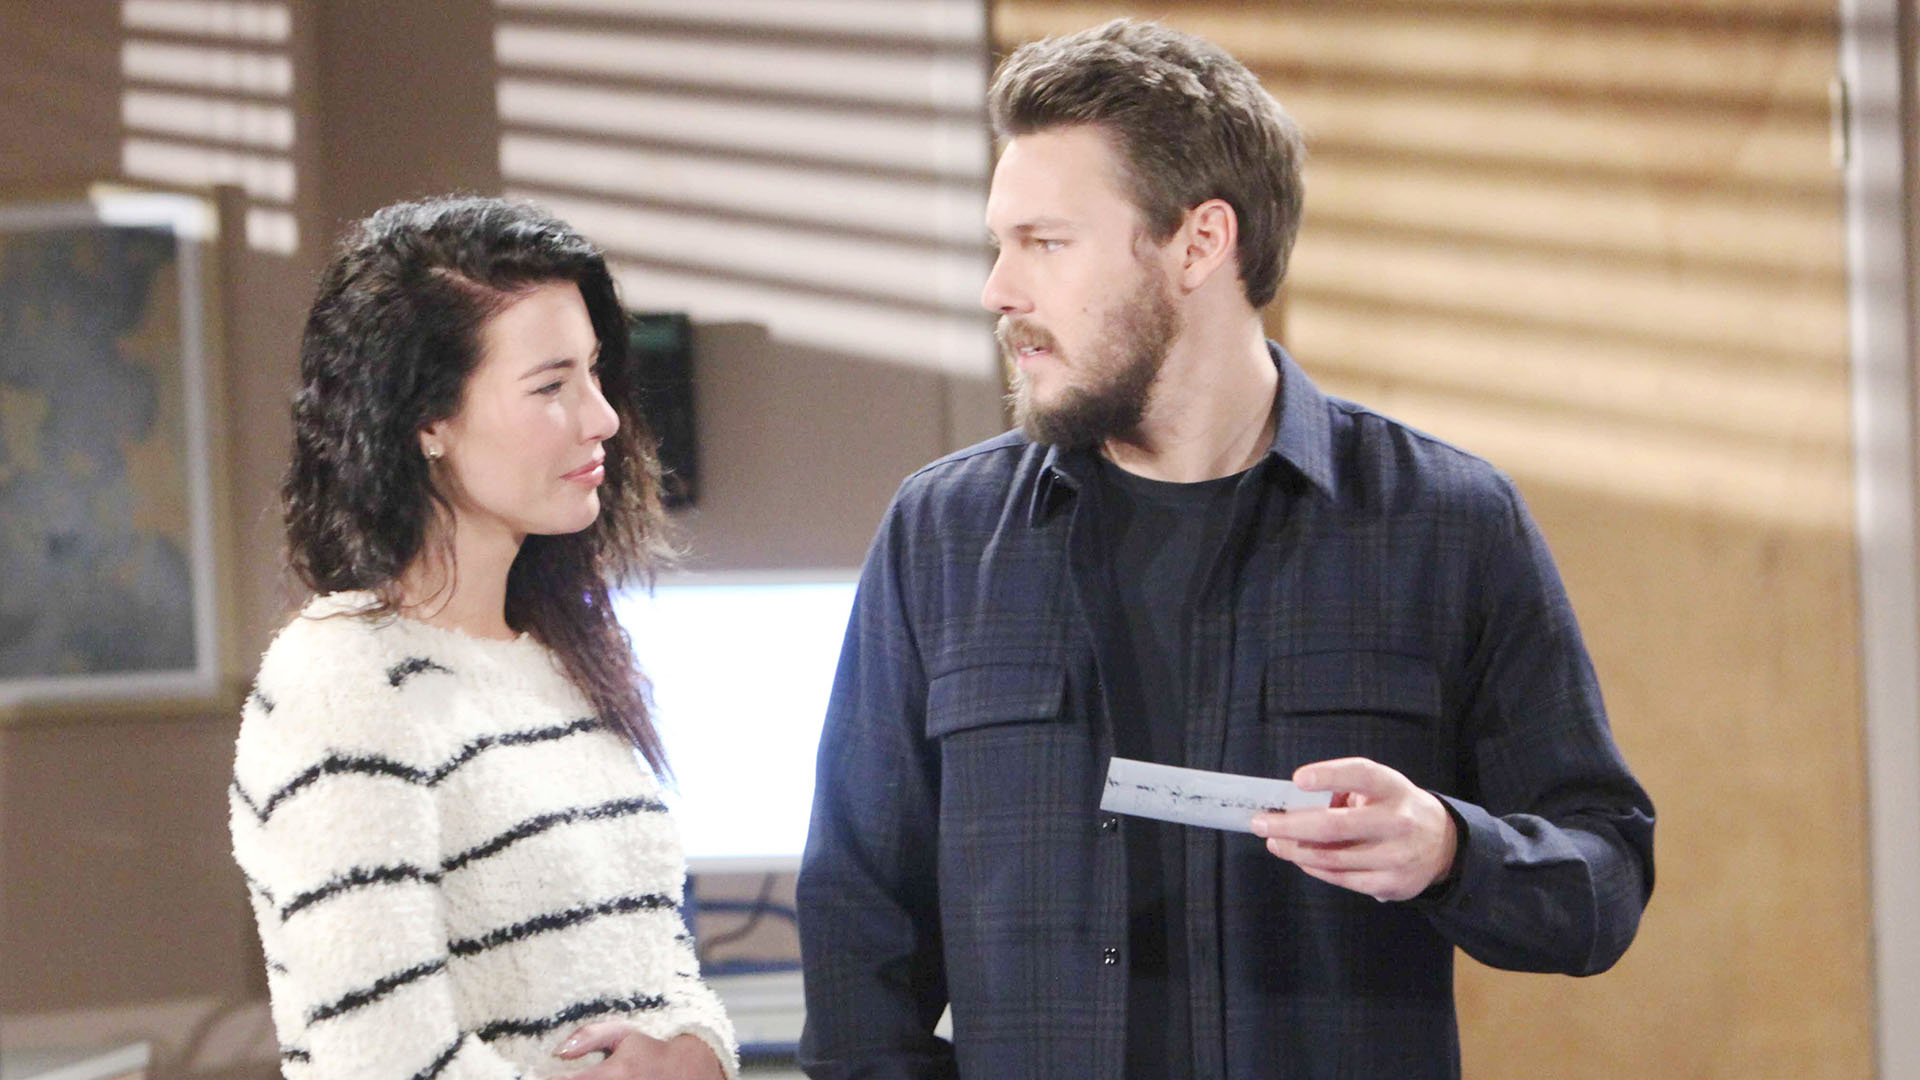 Liam and Steffy share a special moment during her first ultrasound appointment with Dr. Phillips.